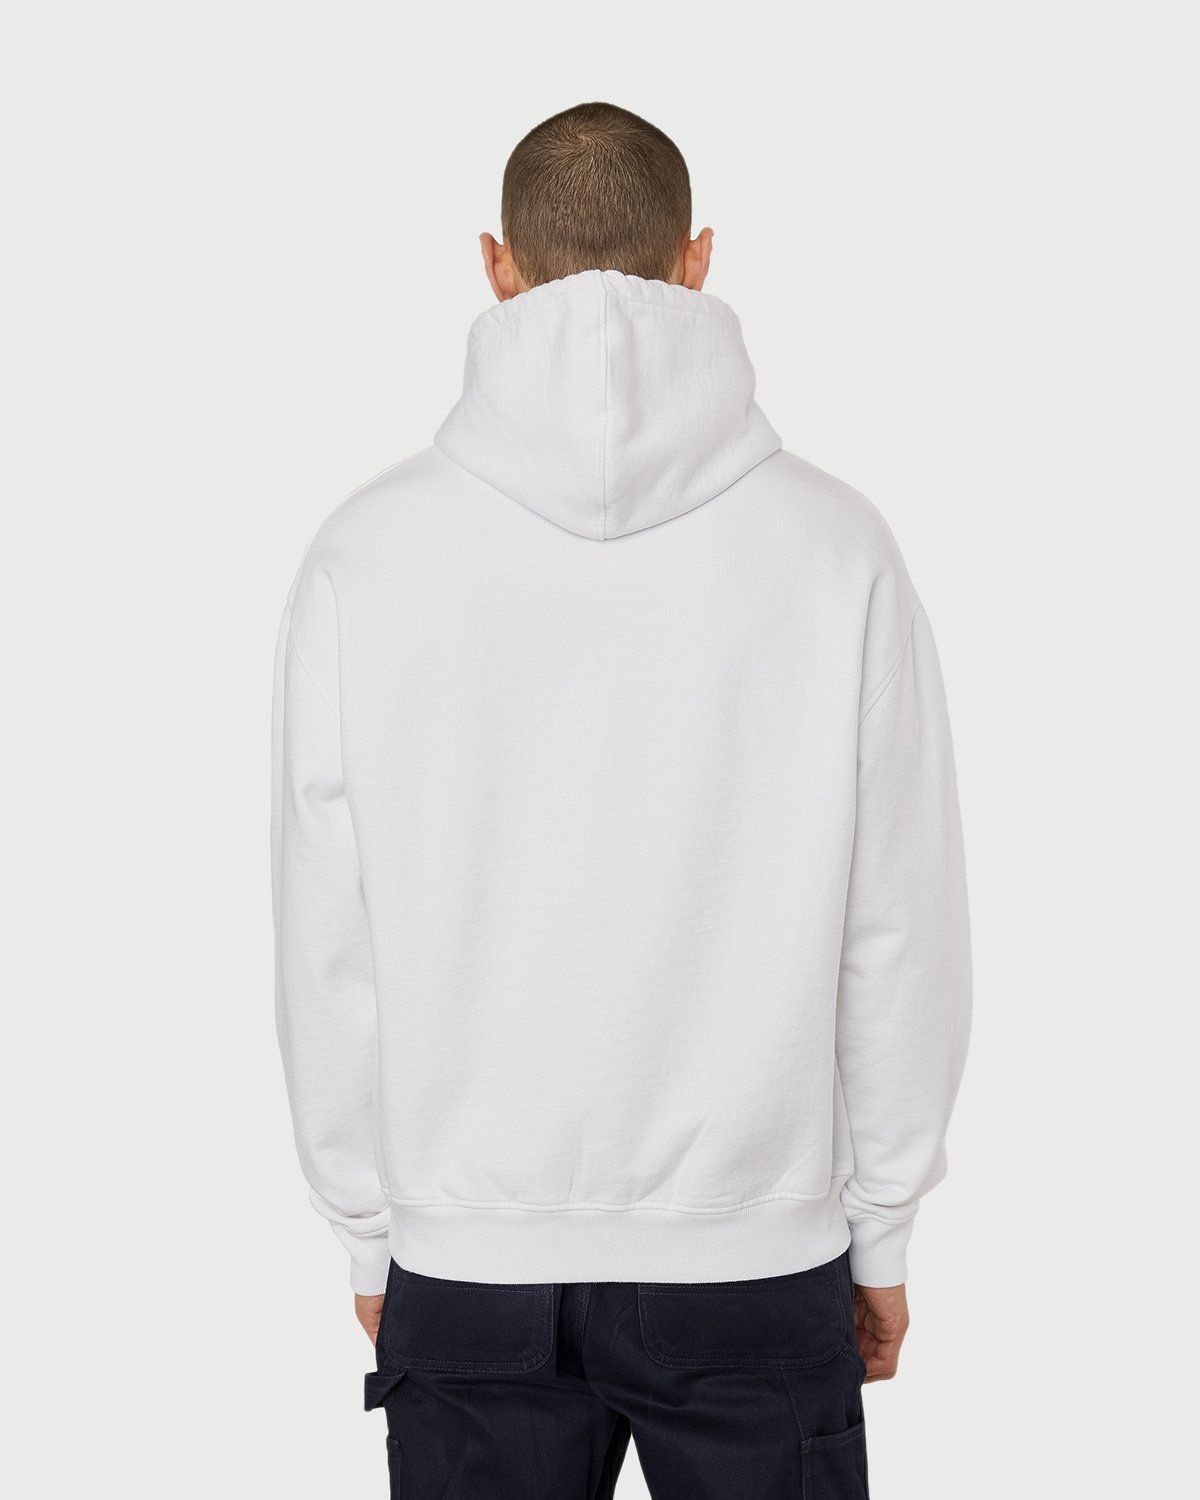 colette Mon Amour - Water Bar Hoodie White - Image 5